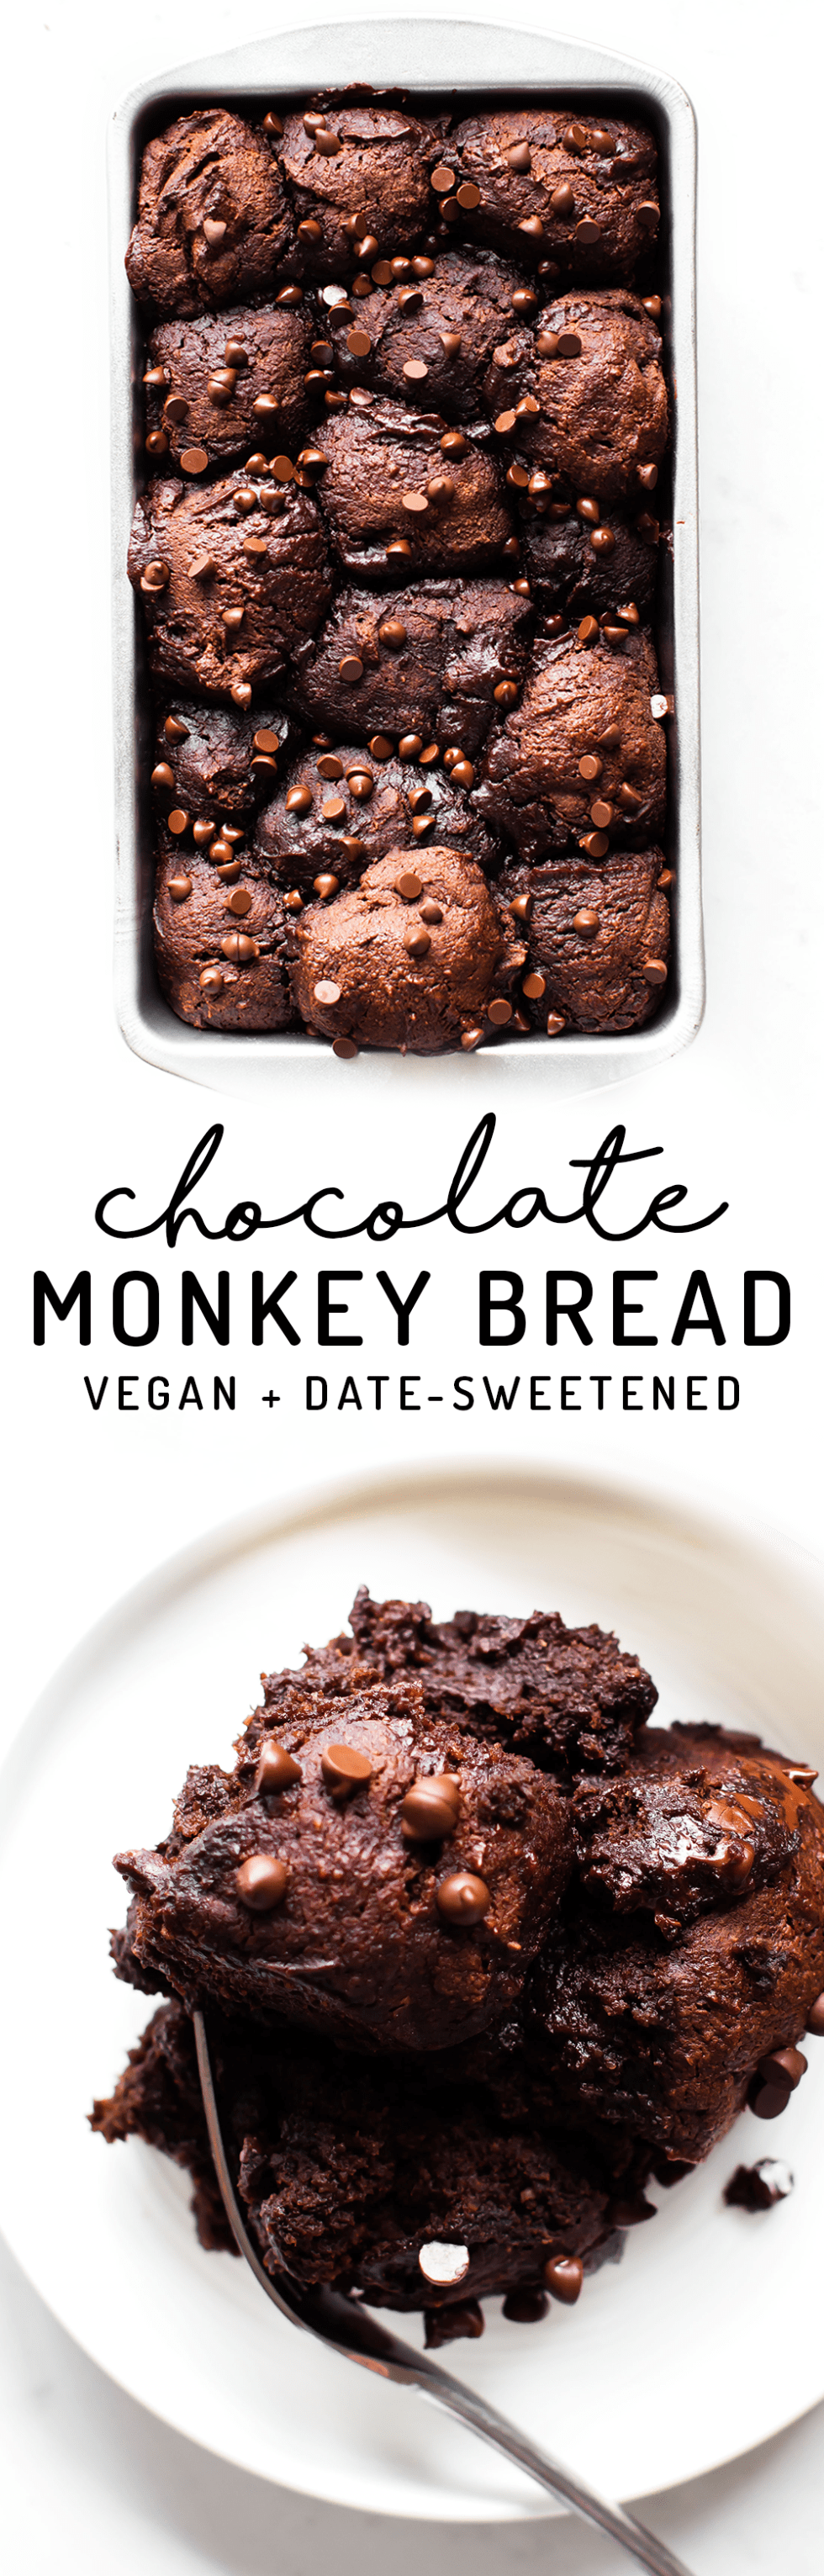 Chocolate Monkey Bread (vegan, paleo, date-sweetened)